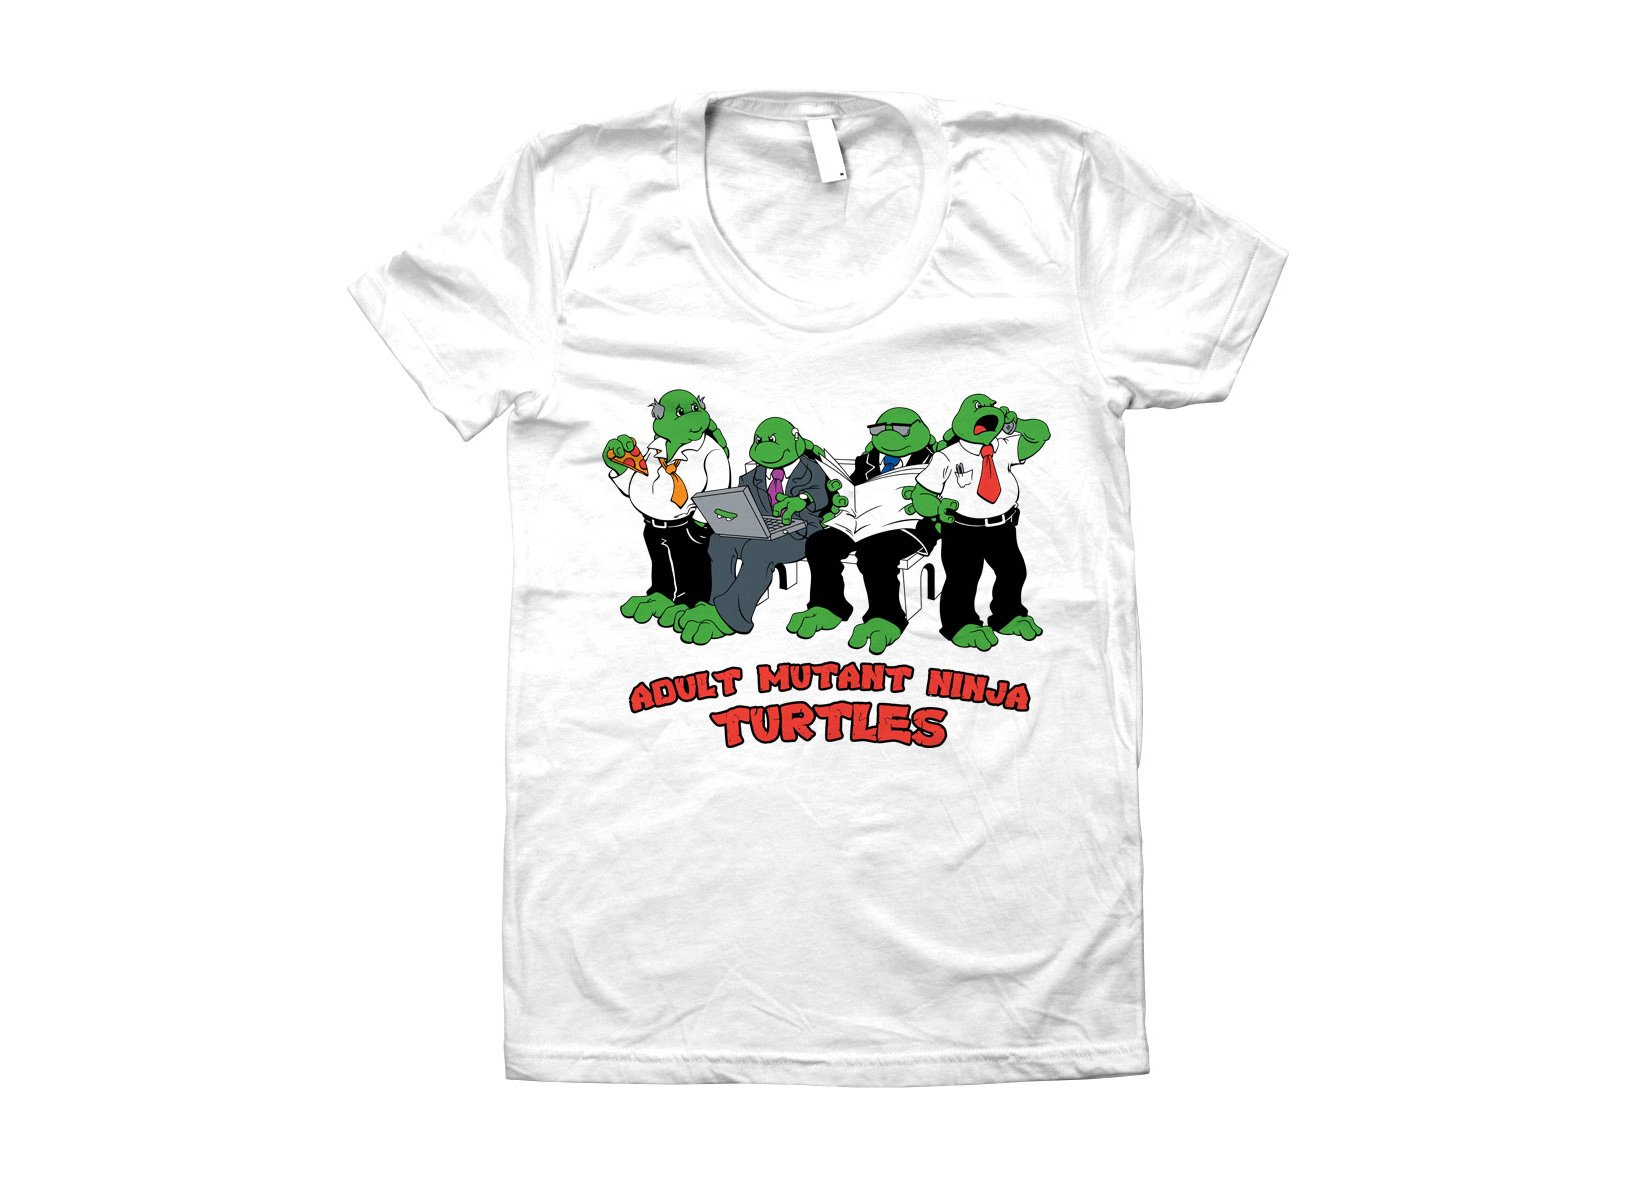 Adult Mutant Ninja Turtles on Juniors T-Shirt